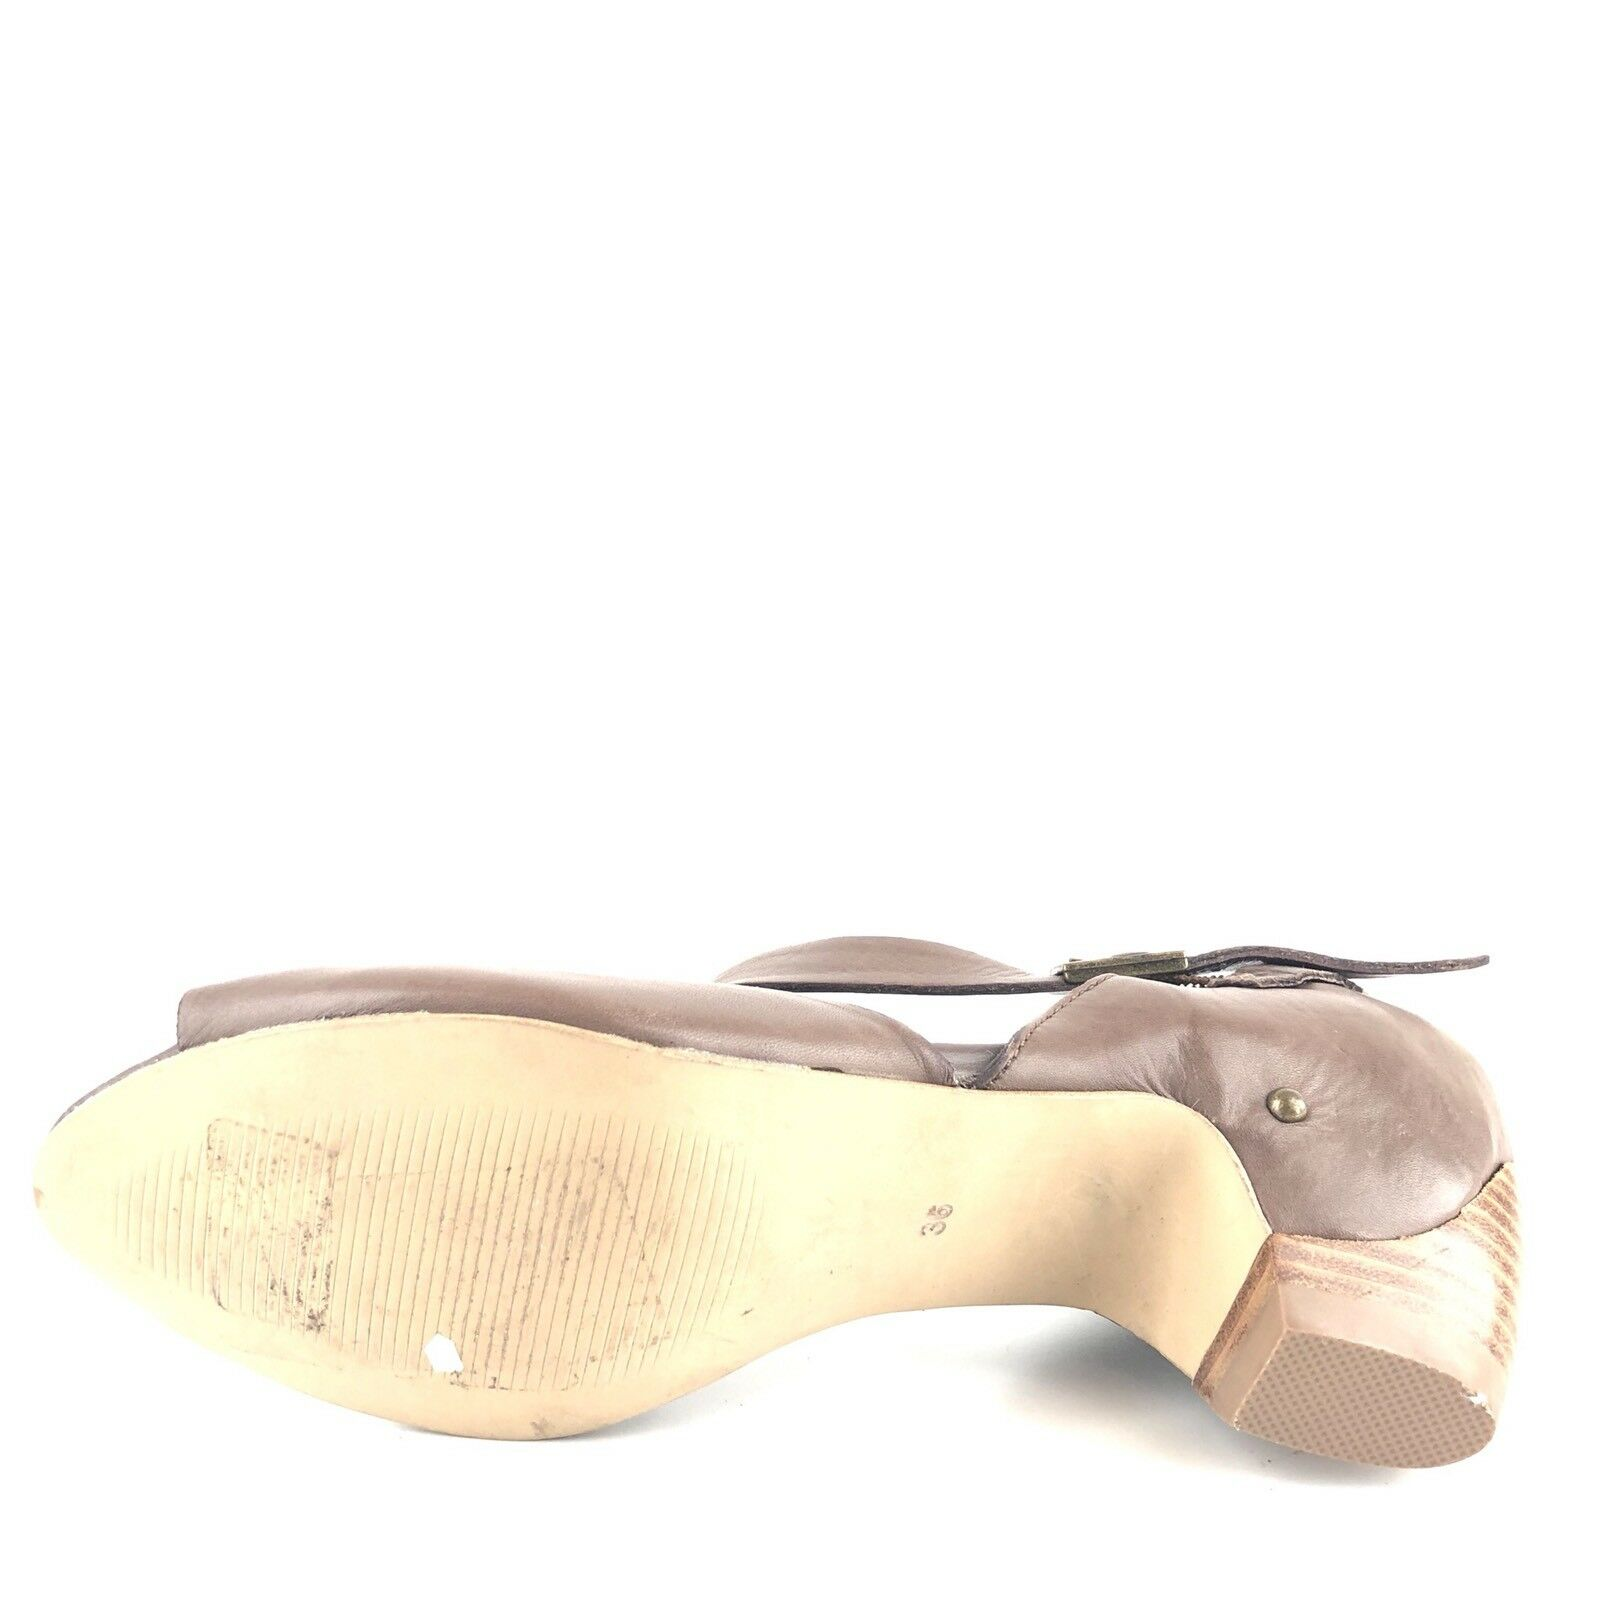 Everybody Everybody Everybody By Bz Moda Marronee Leather Ankle Strap Sandals Donna  Dimensione 36 M  f52573